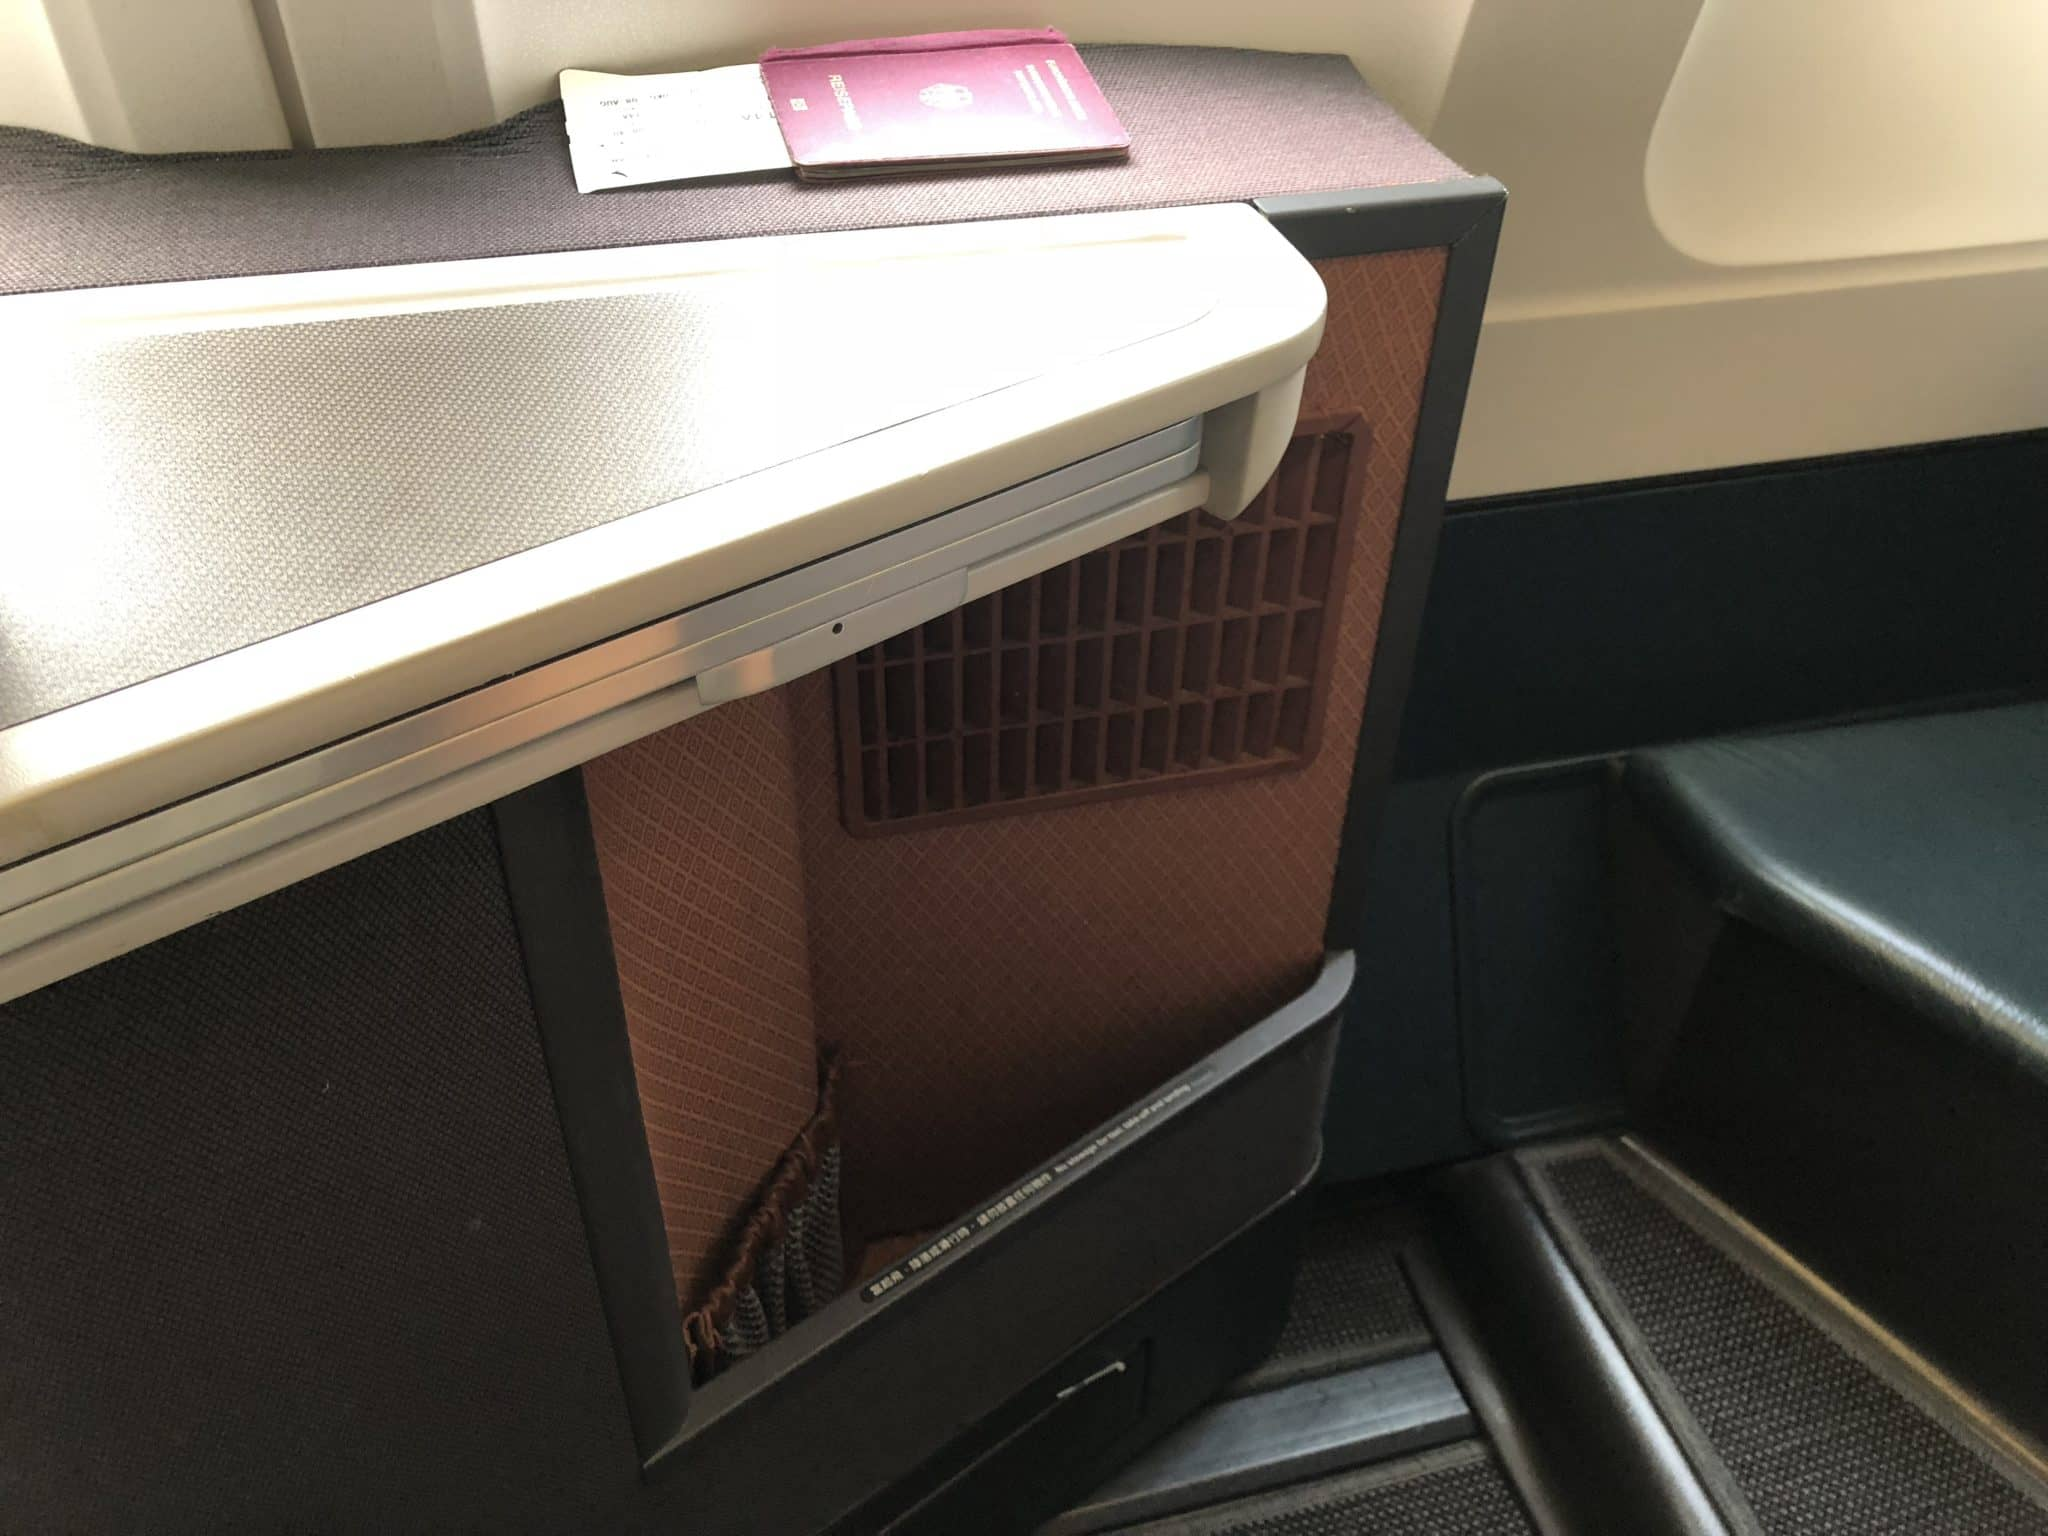 Cathay Pacific Business Class A330 Ablagefach unten links